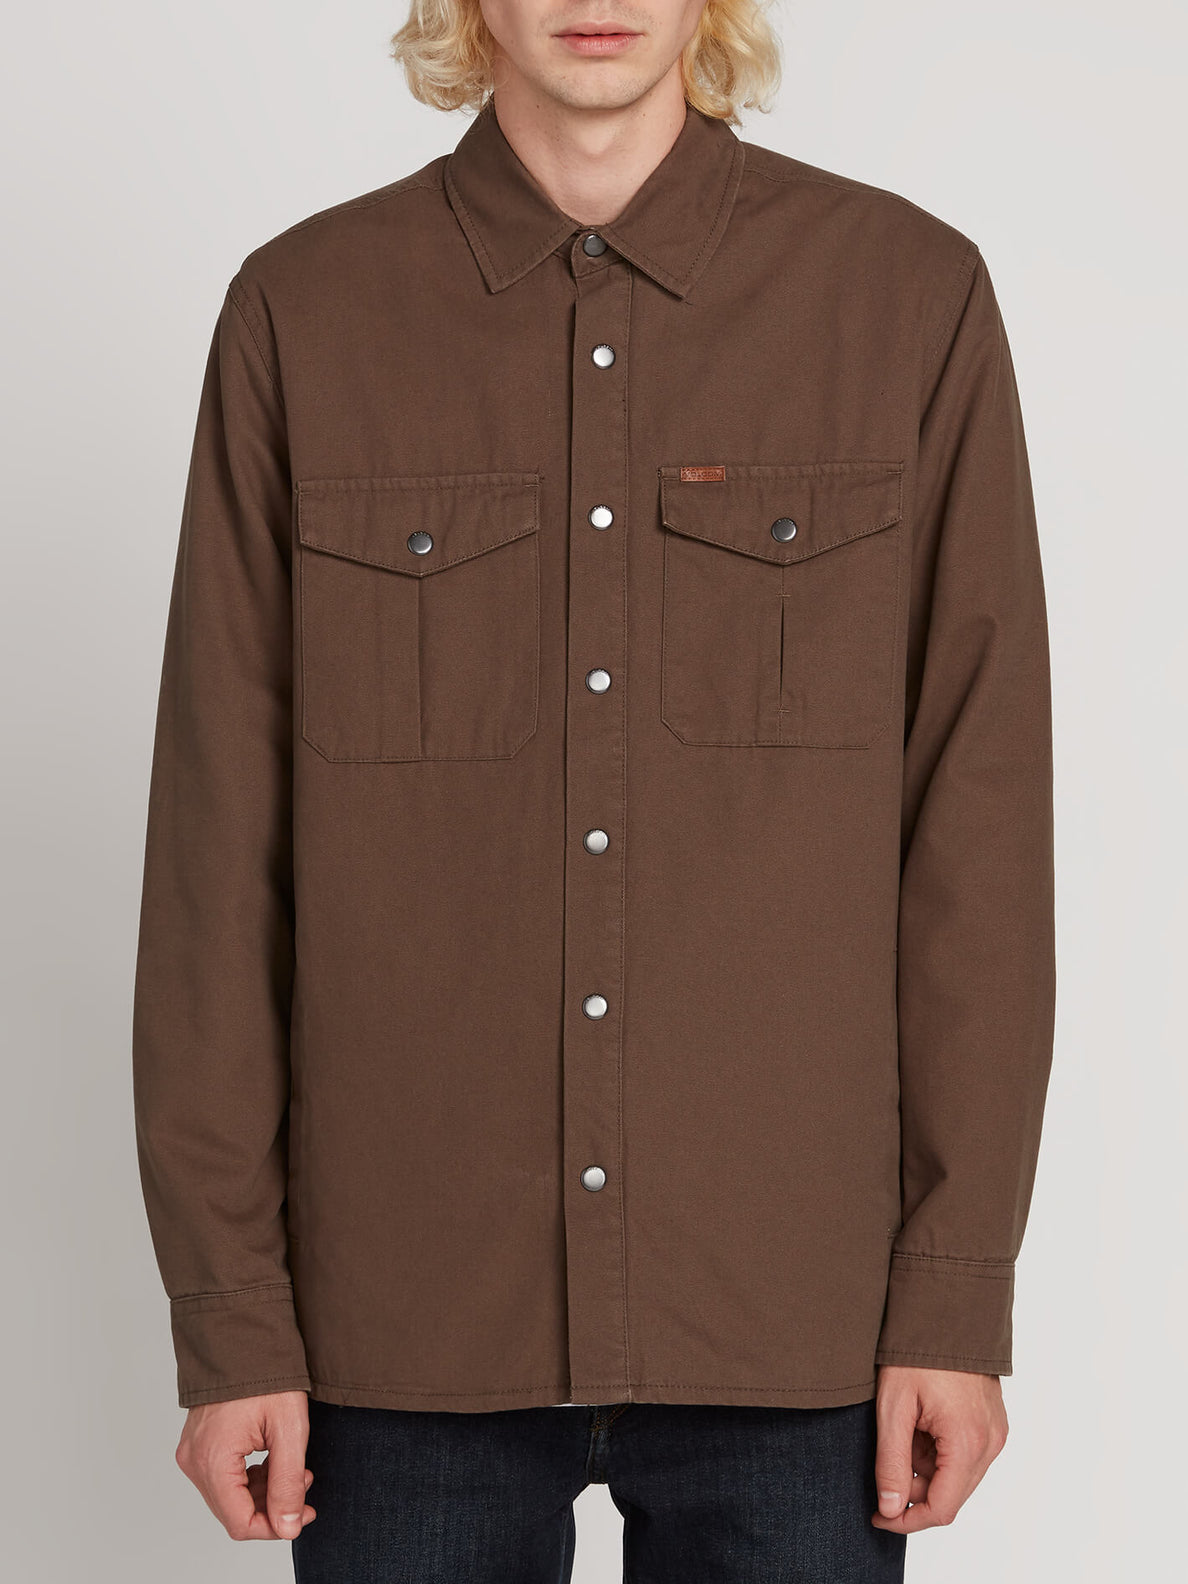 Larkin Jacket - Major Brown (A1631901_MBR) [F]